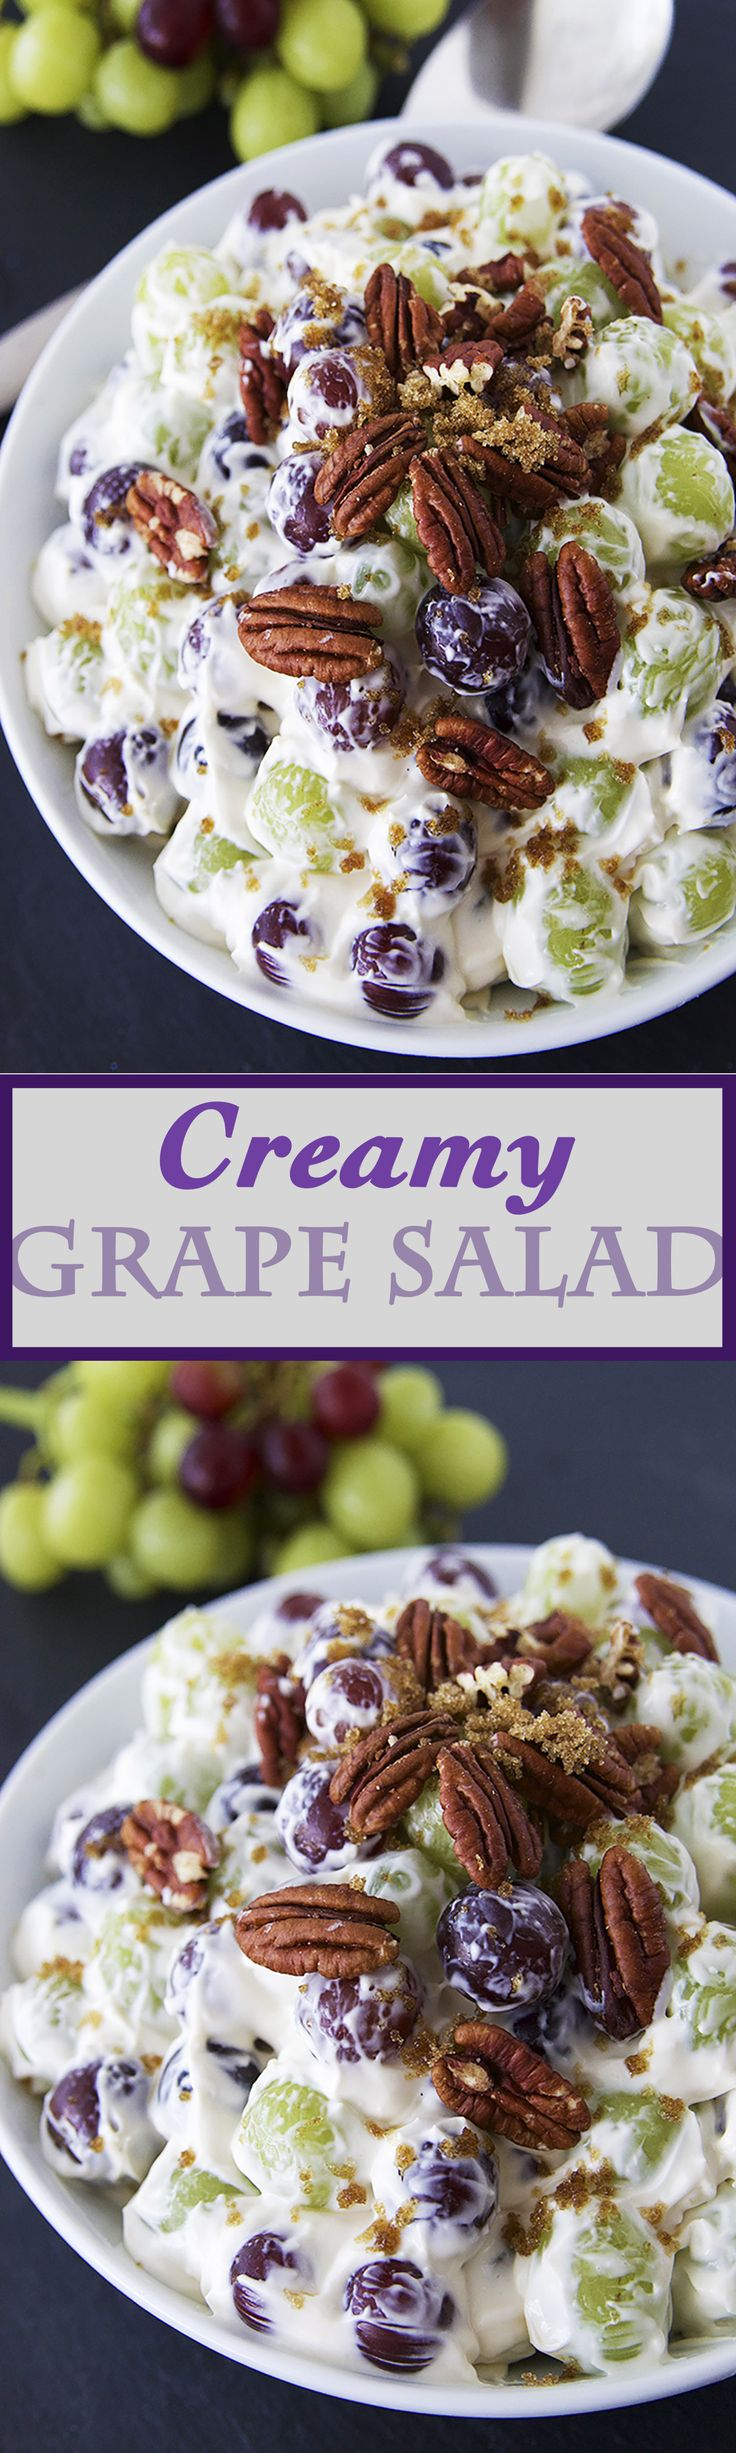 fashion sport shoes Creamy Grape Salad   One of the most addicting fruits salads ever